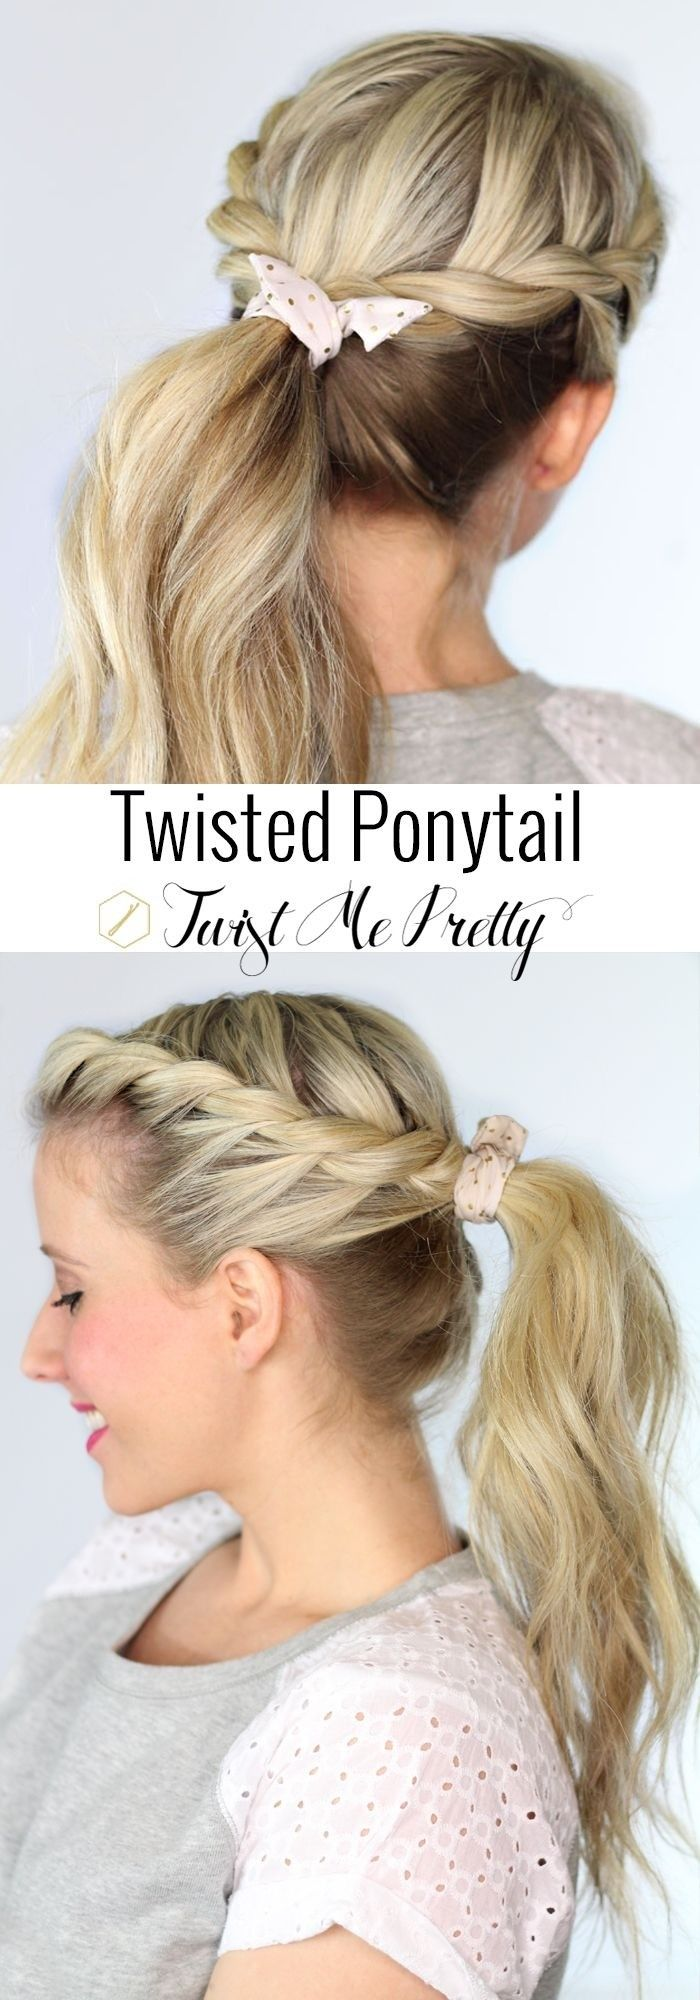 cute ponytail ideas summer and fall hairstyles for long hair